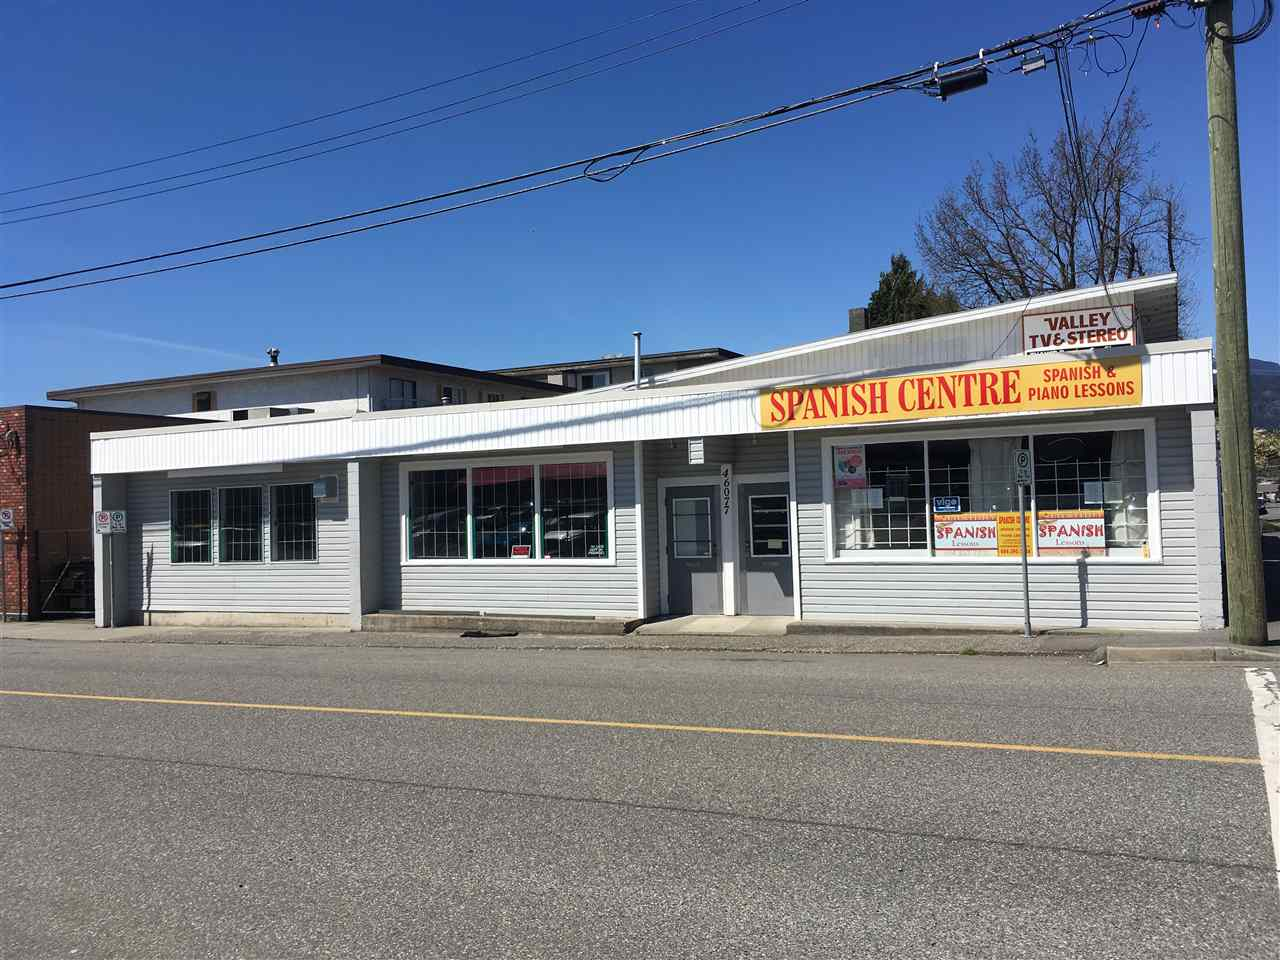 2624 sf ground floor retail/office space available for lease in the heart of Downtown Chilliwack. This unit has great street exposure and would be excellent for an office or retail business. Bring your ideas!